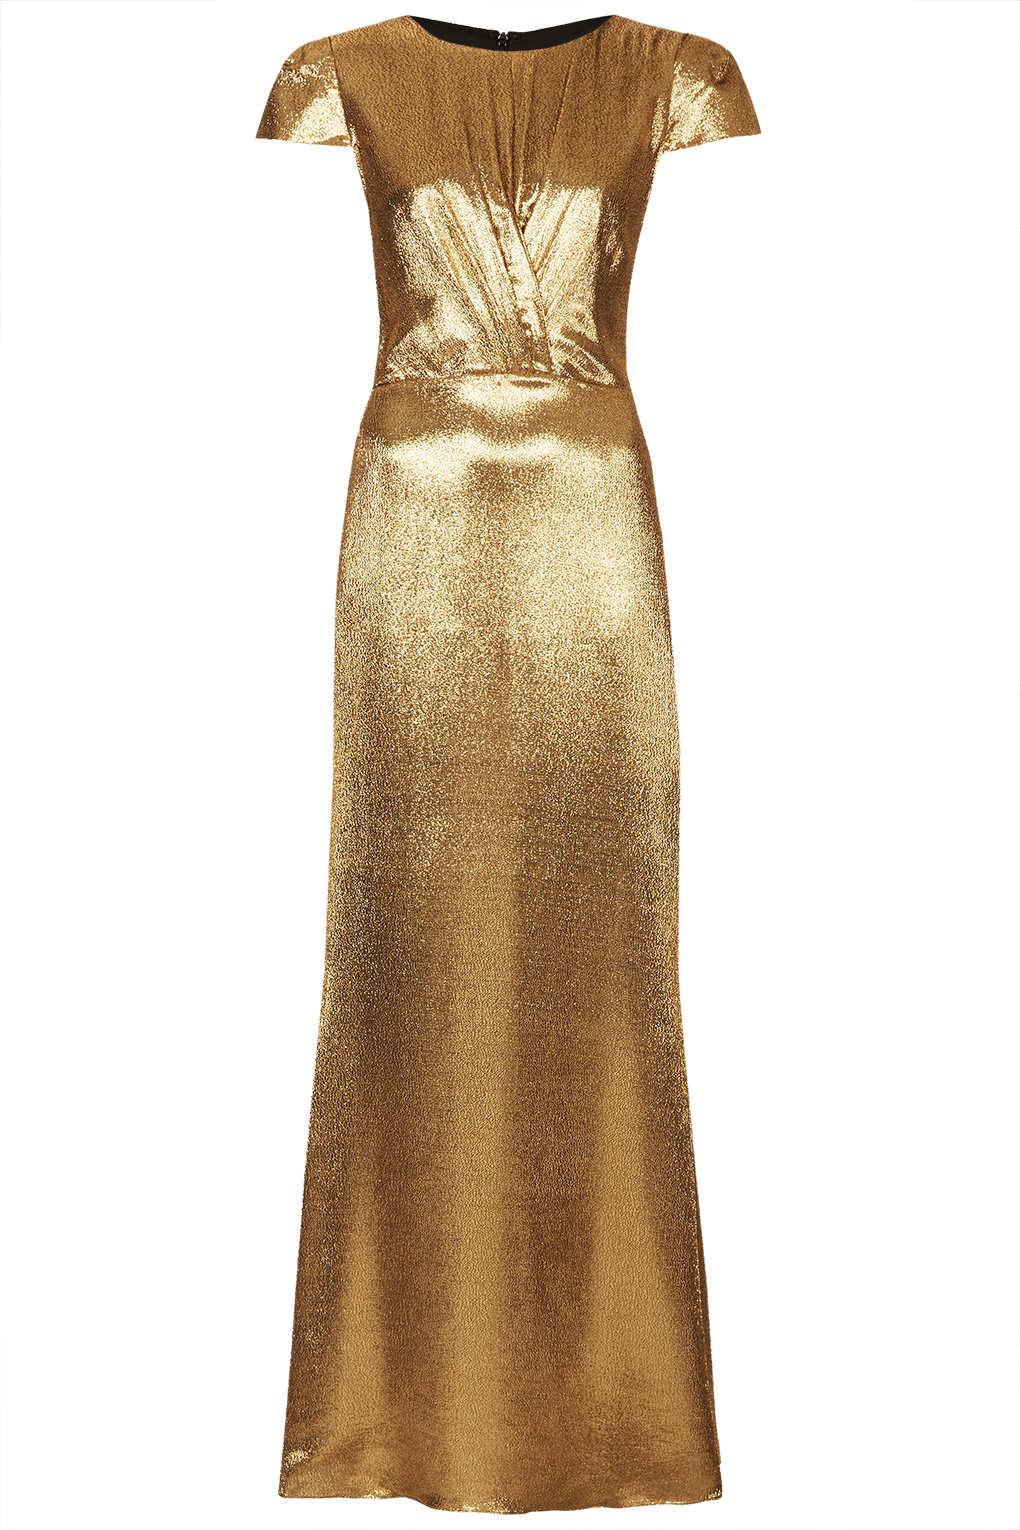 River Island Gold Dress